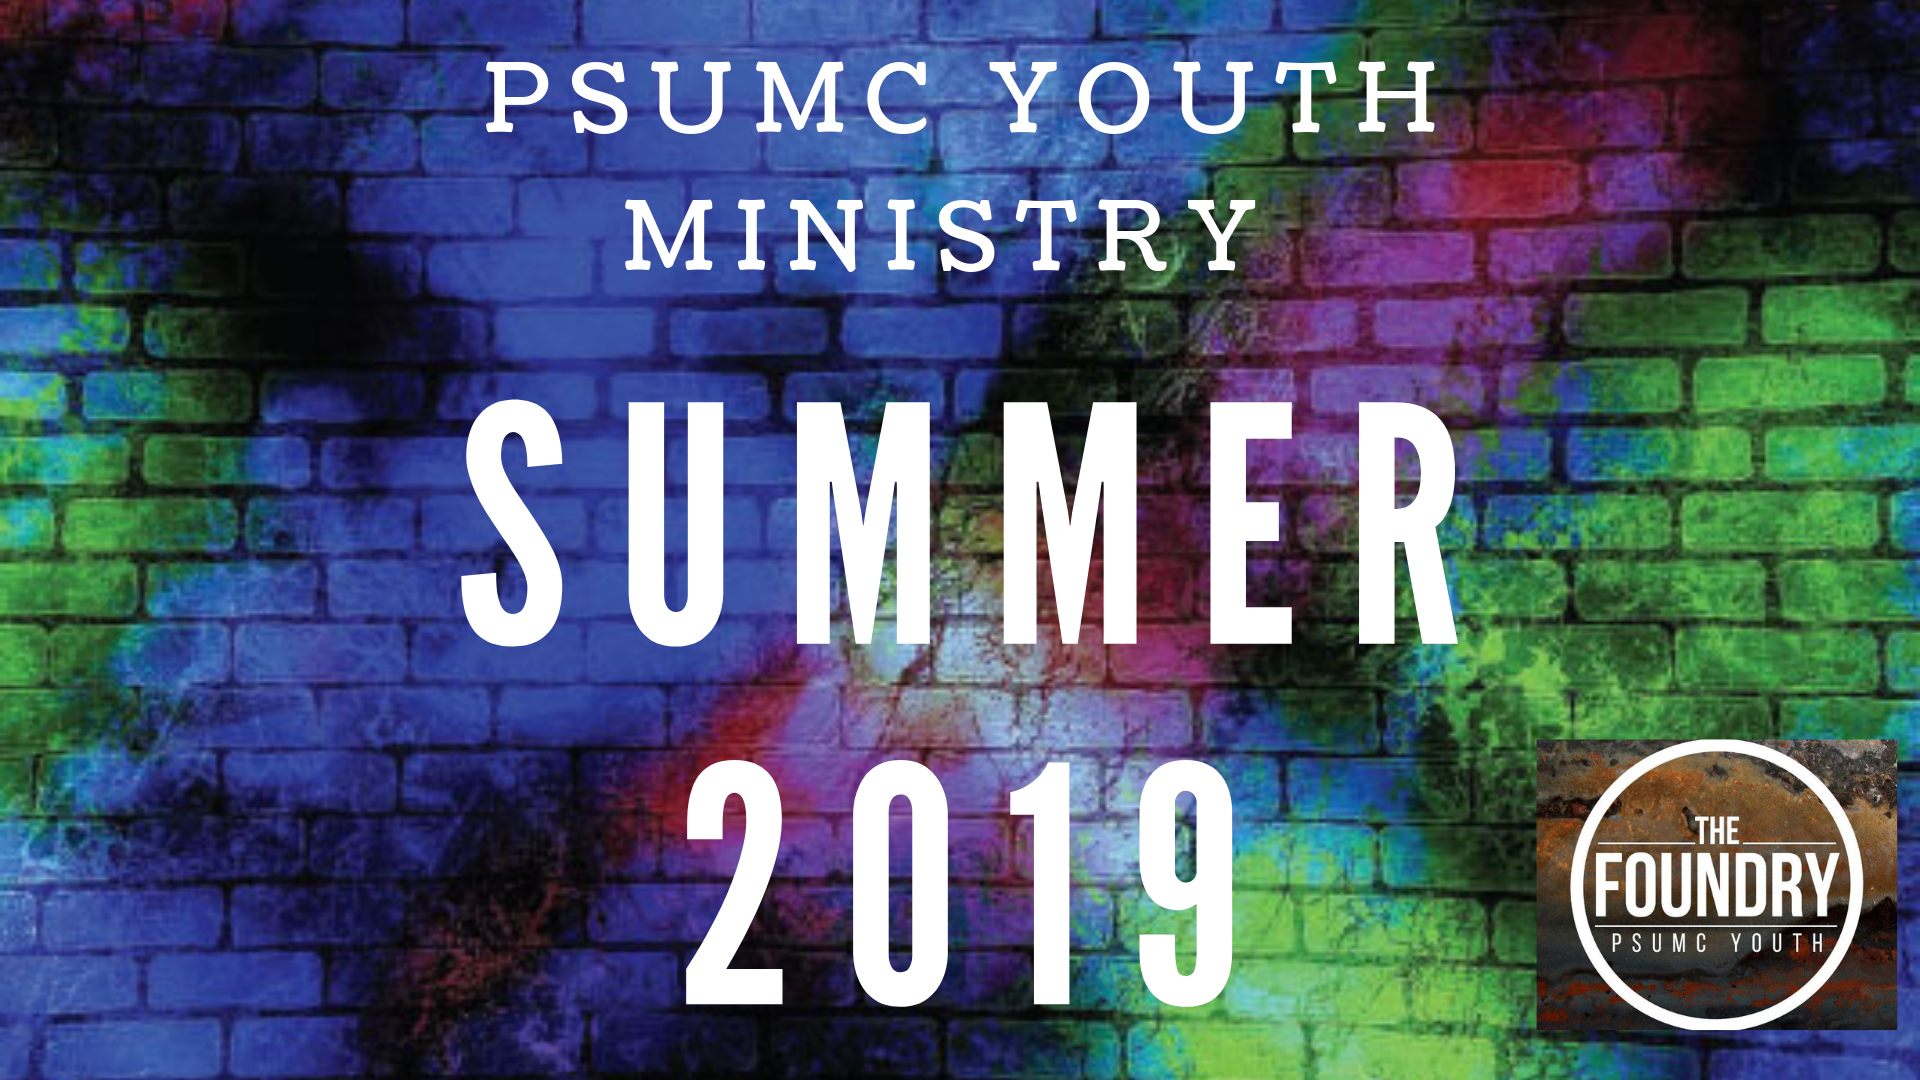 PSUMC YOUTH MINISTRY.png summer.png